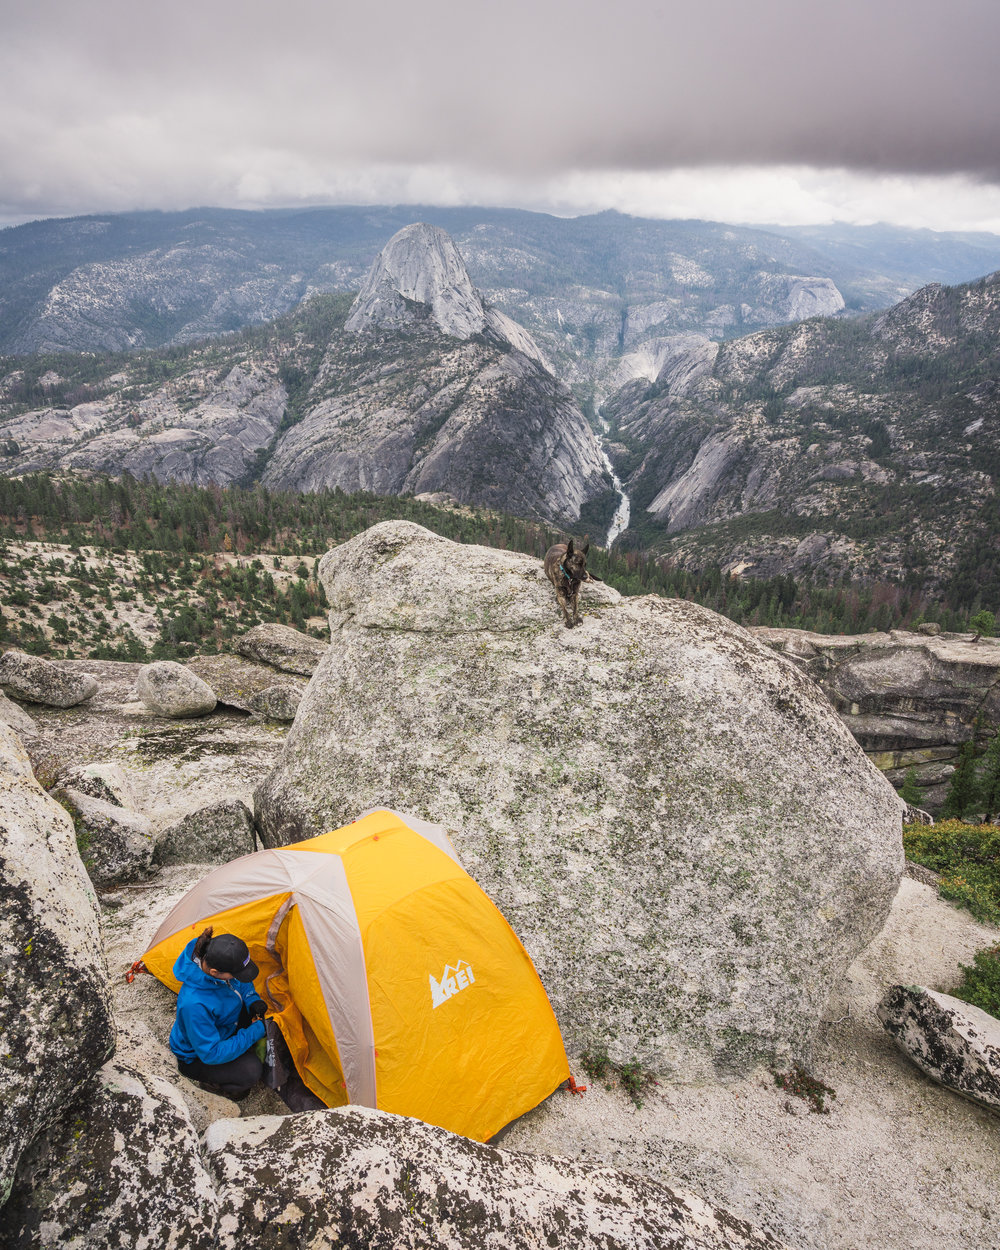 balloon dome, california, half dome, sister, sierra national forest, ansel adams wilderness, bushwacking, solitude, camping, tent, rei, half dome plus 2 ten